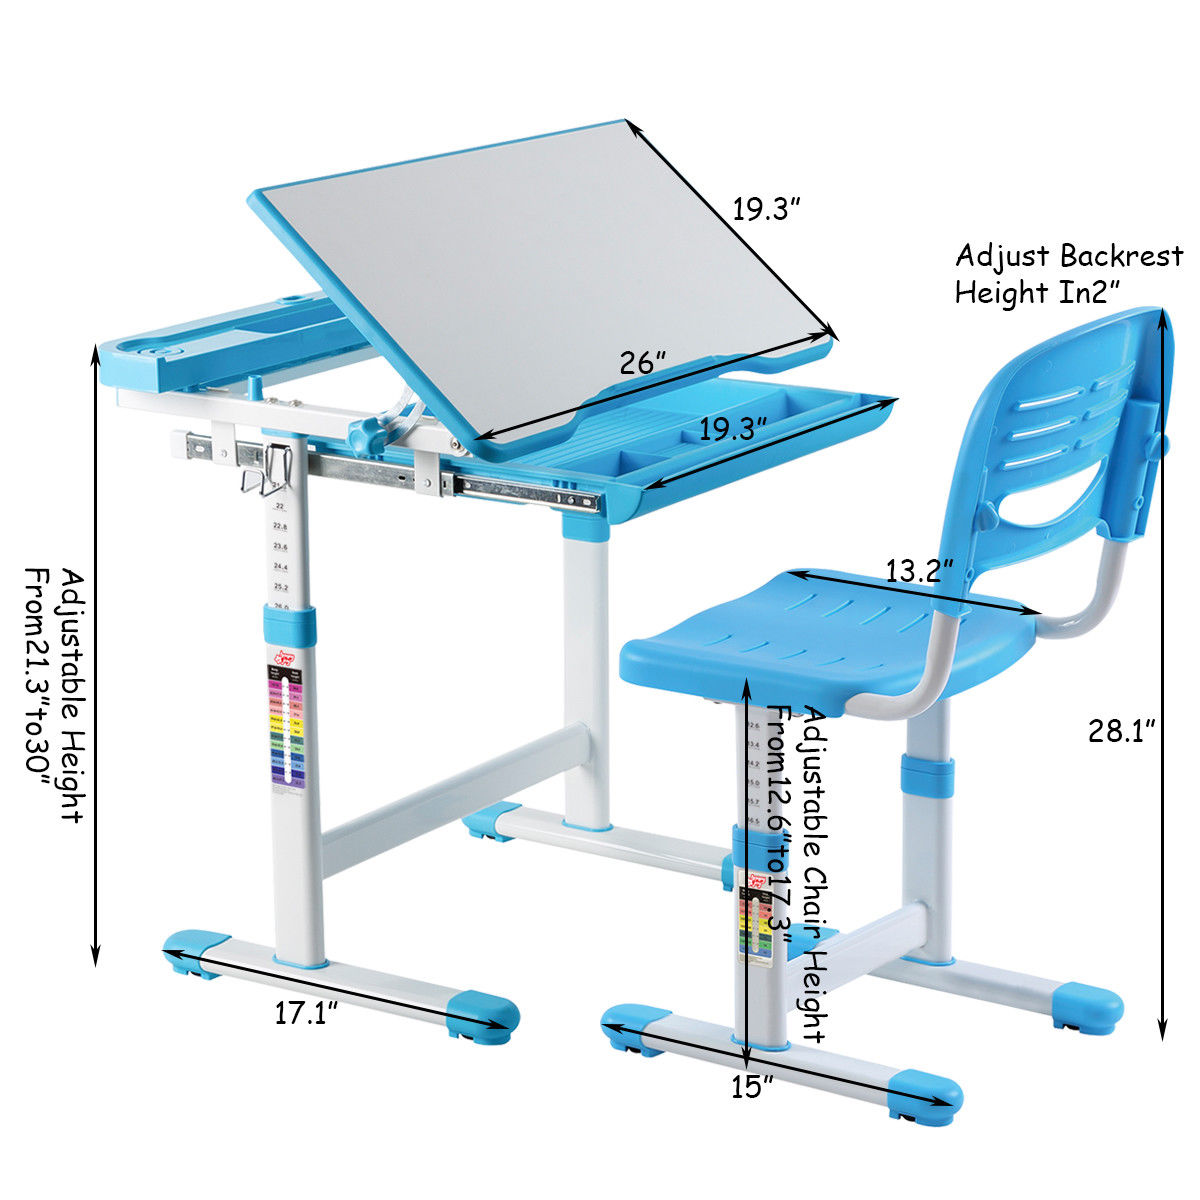 Height Adjustable Chair Gymax Height Adjustable Children S Desk Chair Set Multifunctional Study Drawing Blue